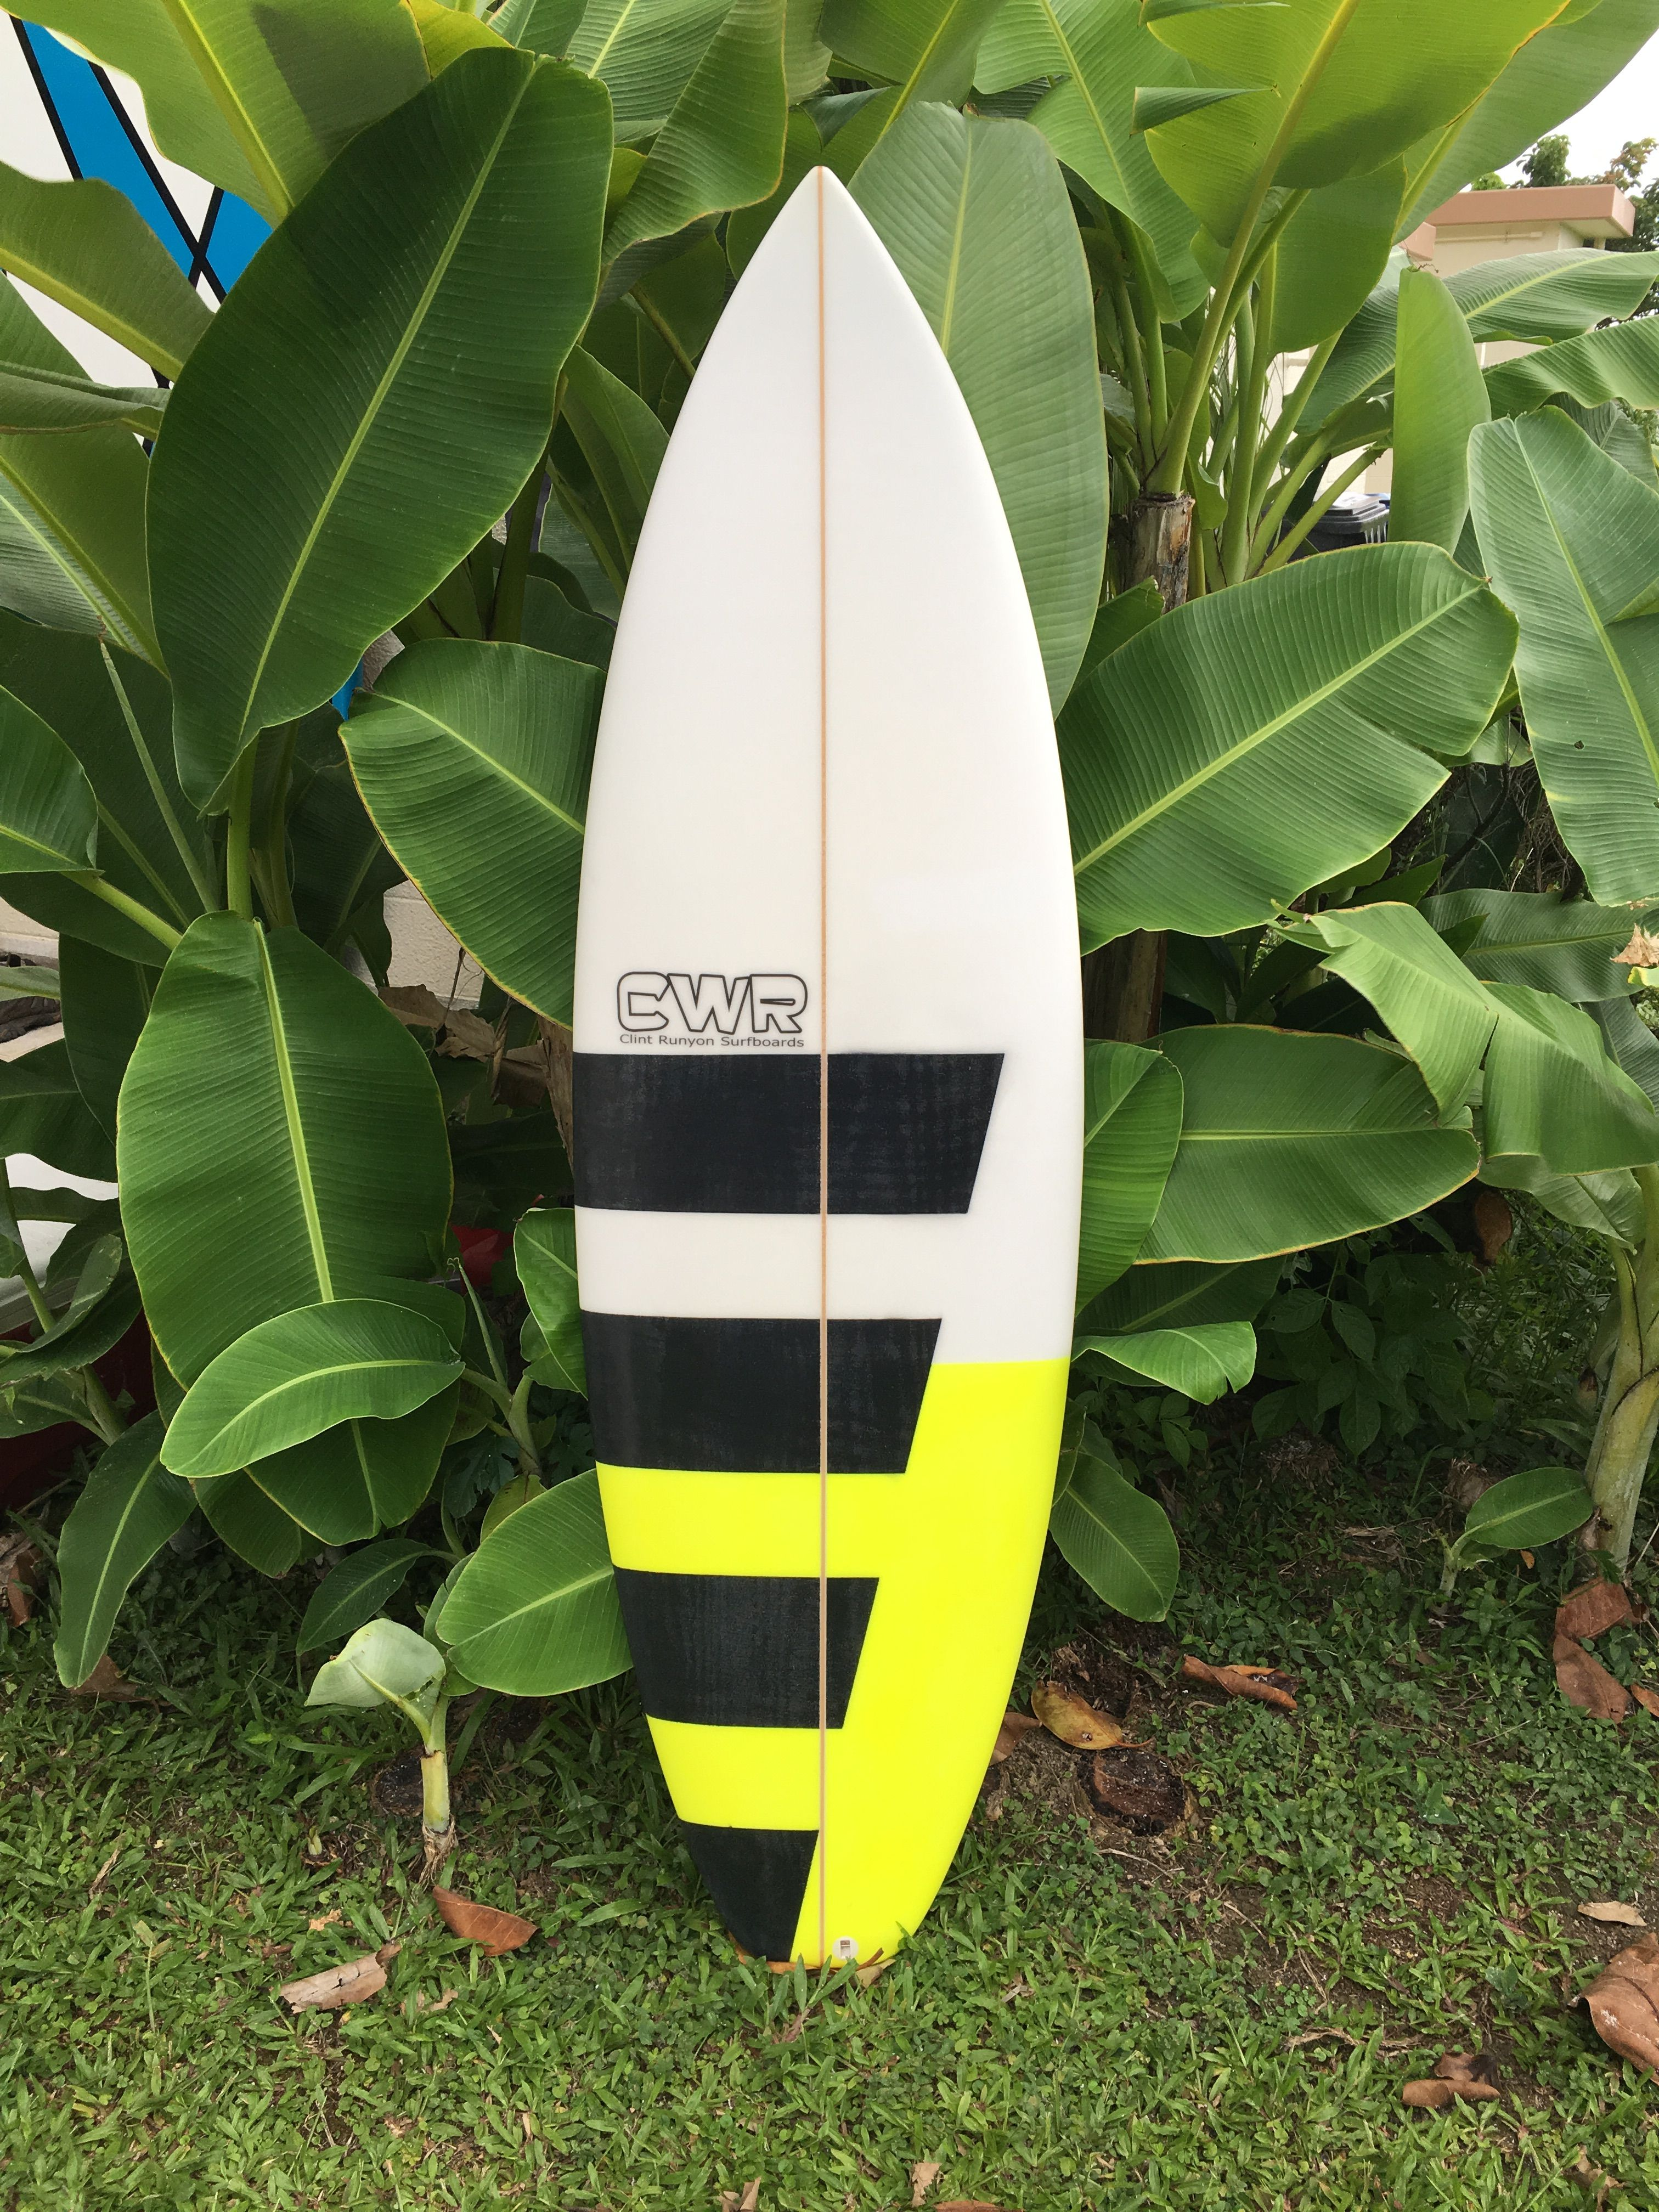 Shortboard with airbrush CWR Surfboards